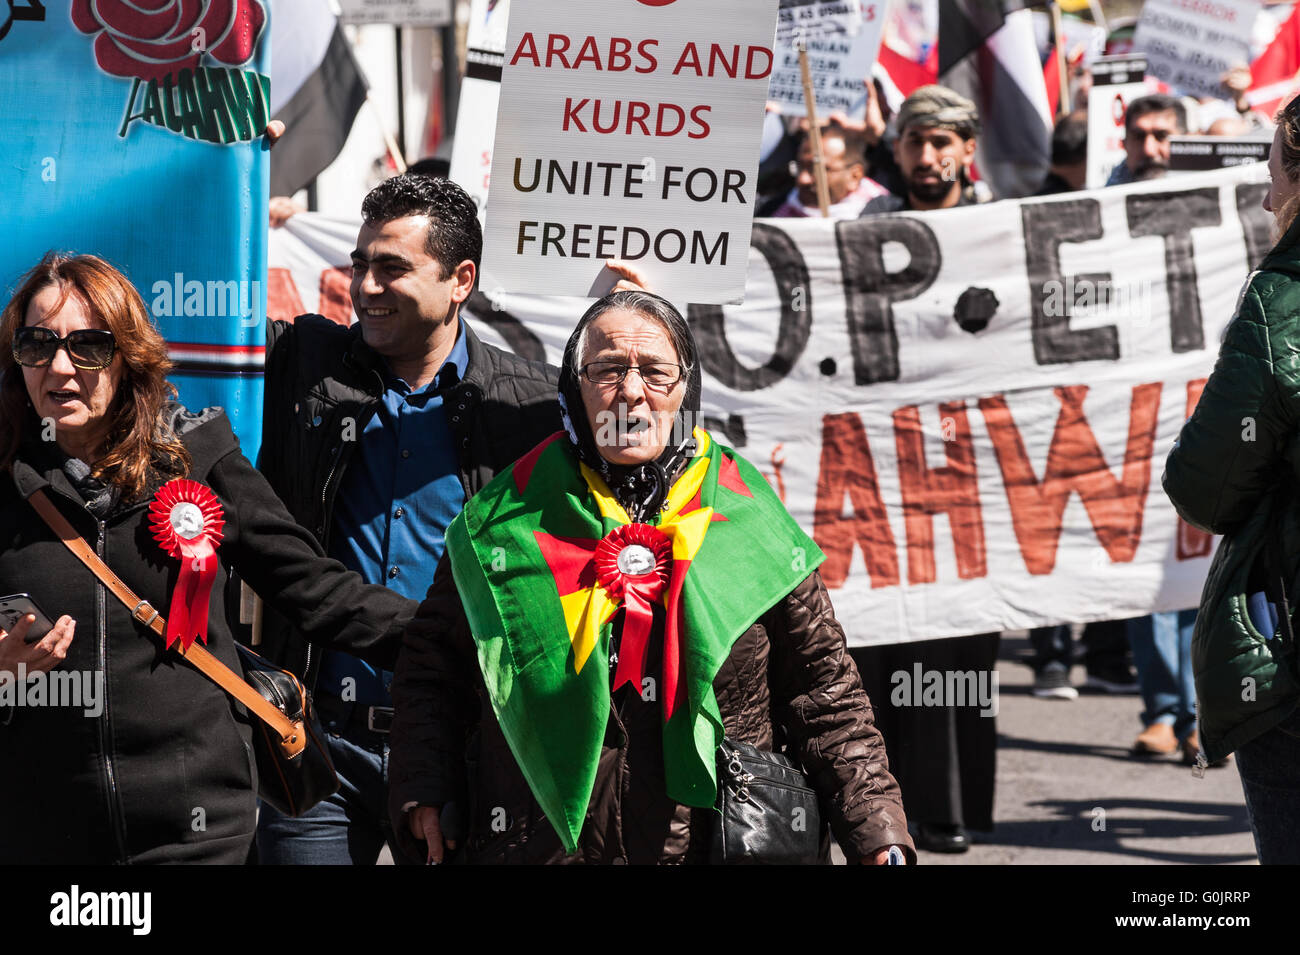 London, UK. 1st May 2016. Workers and trade unions' activists from Britain and around the world marched across - Stock Image